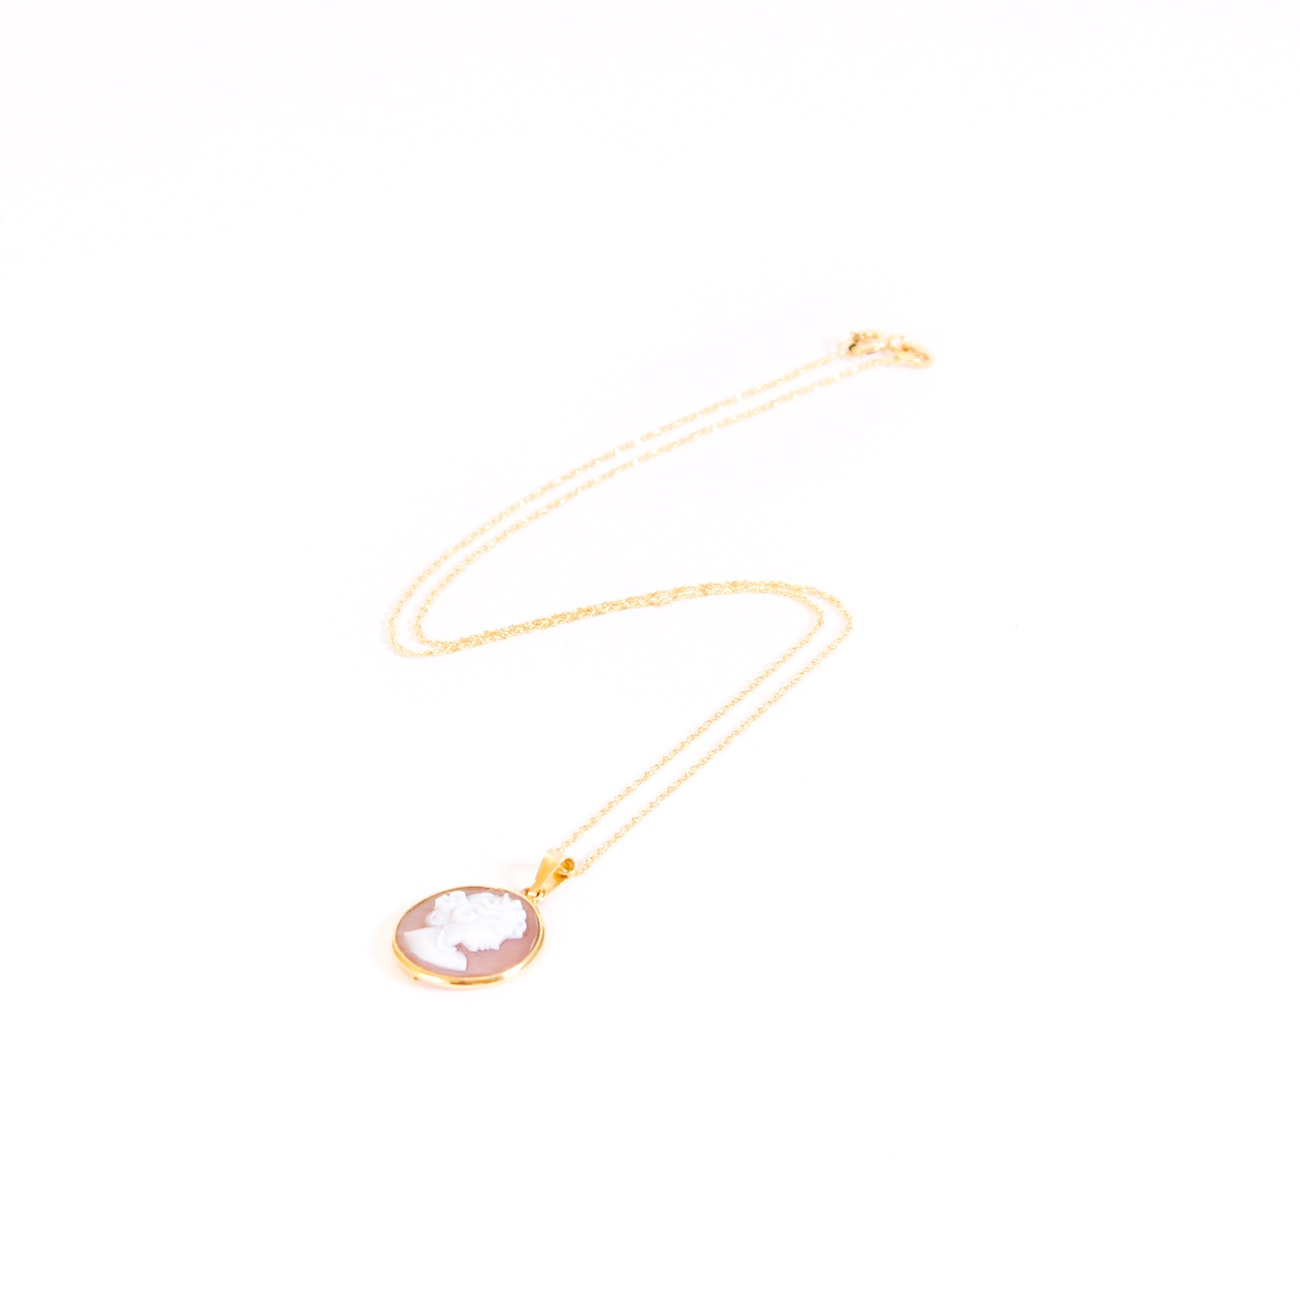 18K Yellow Gold Cameo Necklace